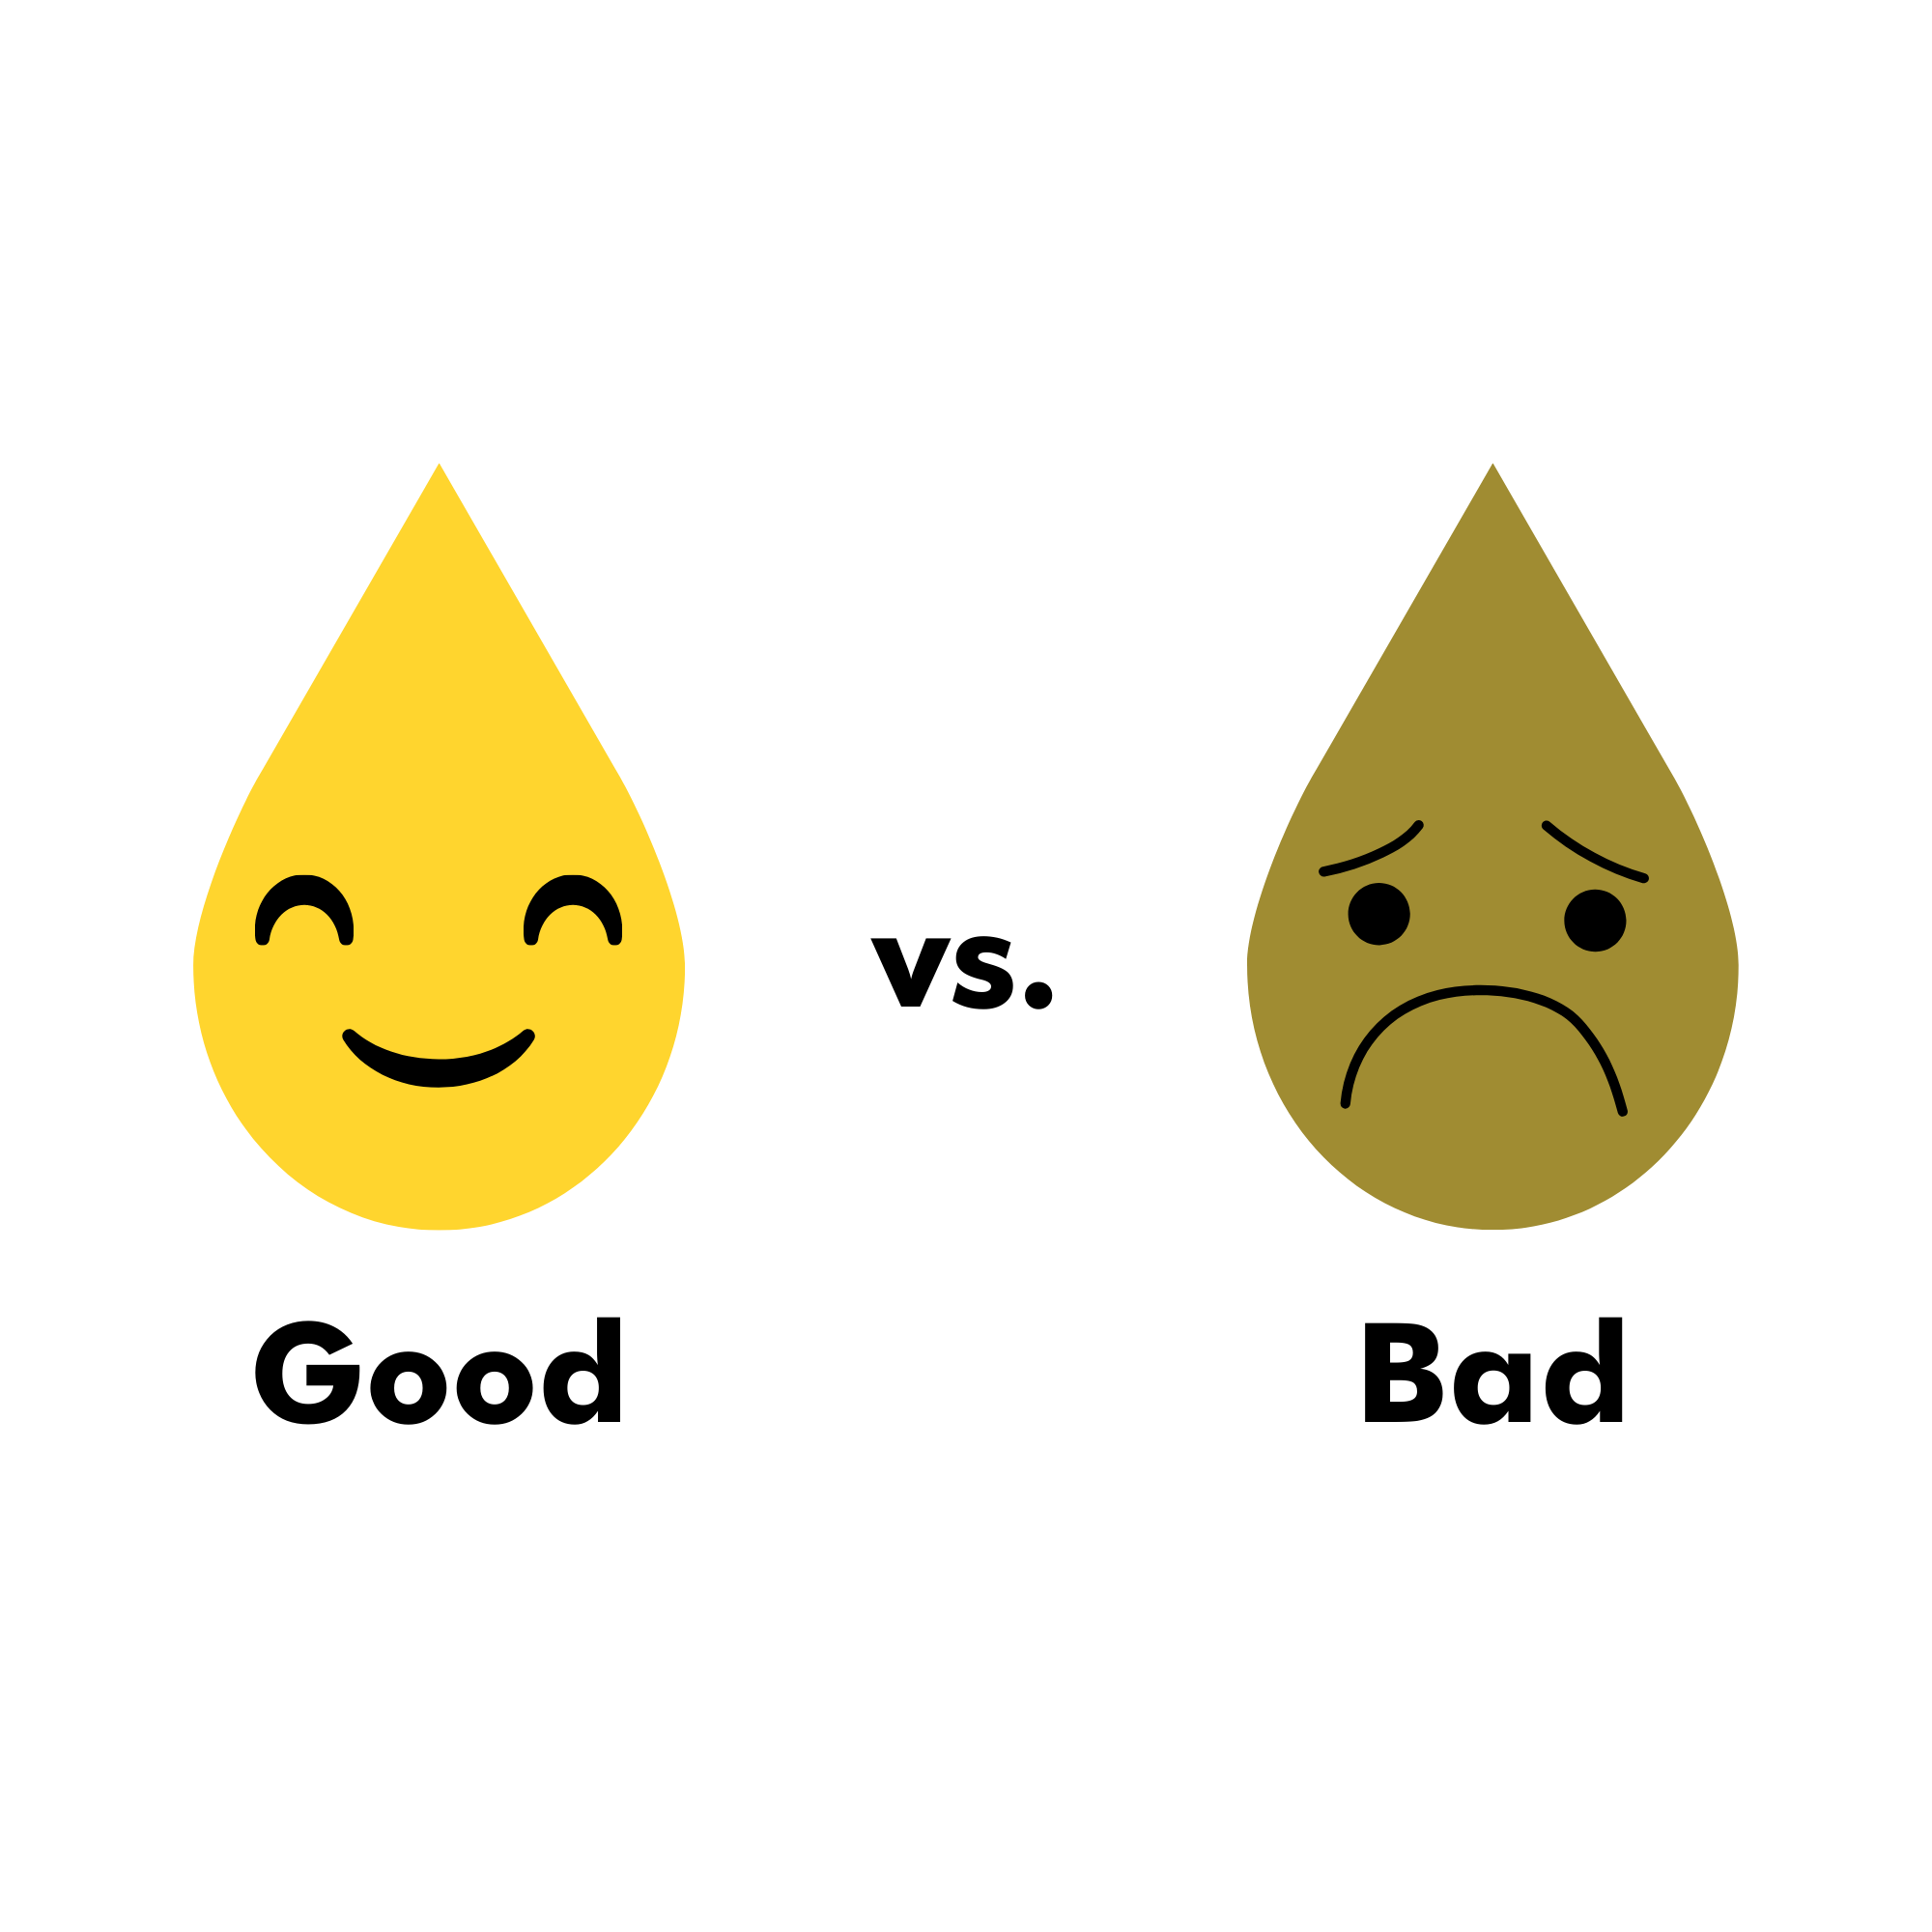 Graphic image showing two sweat drops, one happy sweat drop and one sad sweat drop with text captions. The happy sweat drop is good sweat and the sad sweat drop is bad sweat.